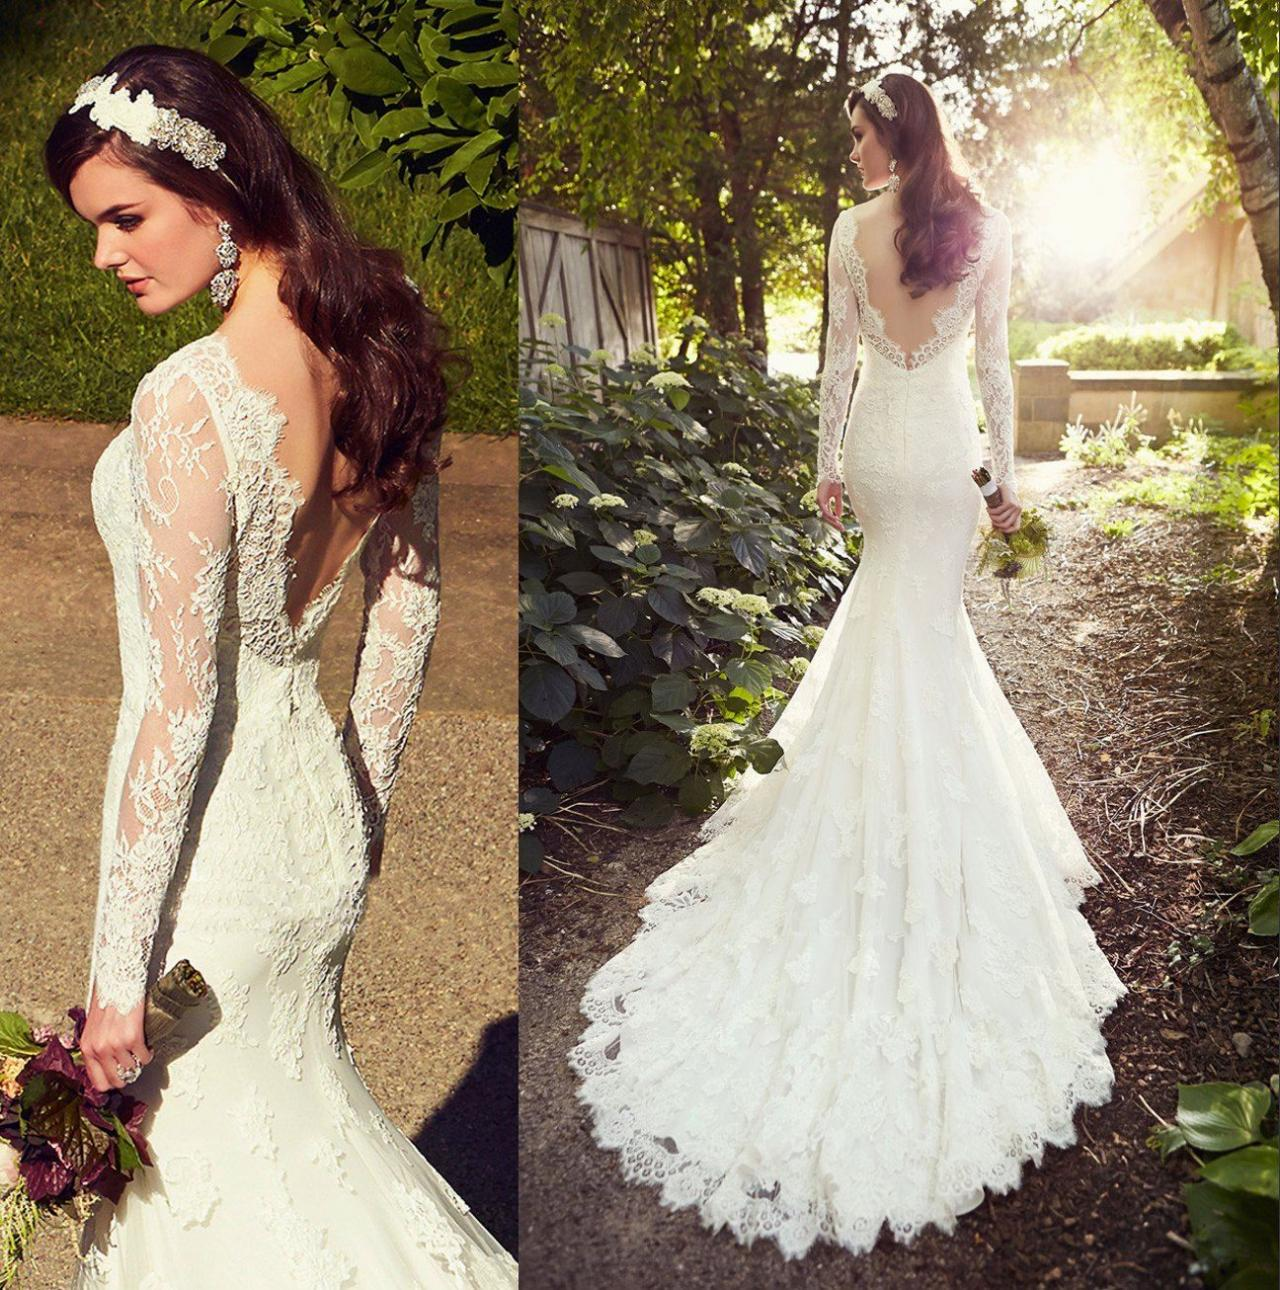 white wedding dresses long sleeves wedding gown lace wedding gowns ball gown bridal dress princess w white wedding dresses White Wedding Dresses Long Sleeves Wedding Gown Lace Wedding Gowns Ball Gown Bridal Dress Princess Wedding Dress Beautiful Brides Dress With Long Train